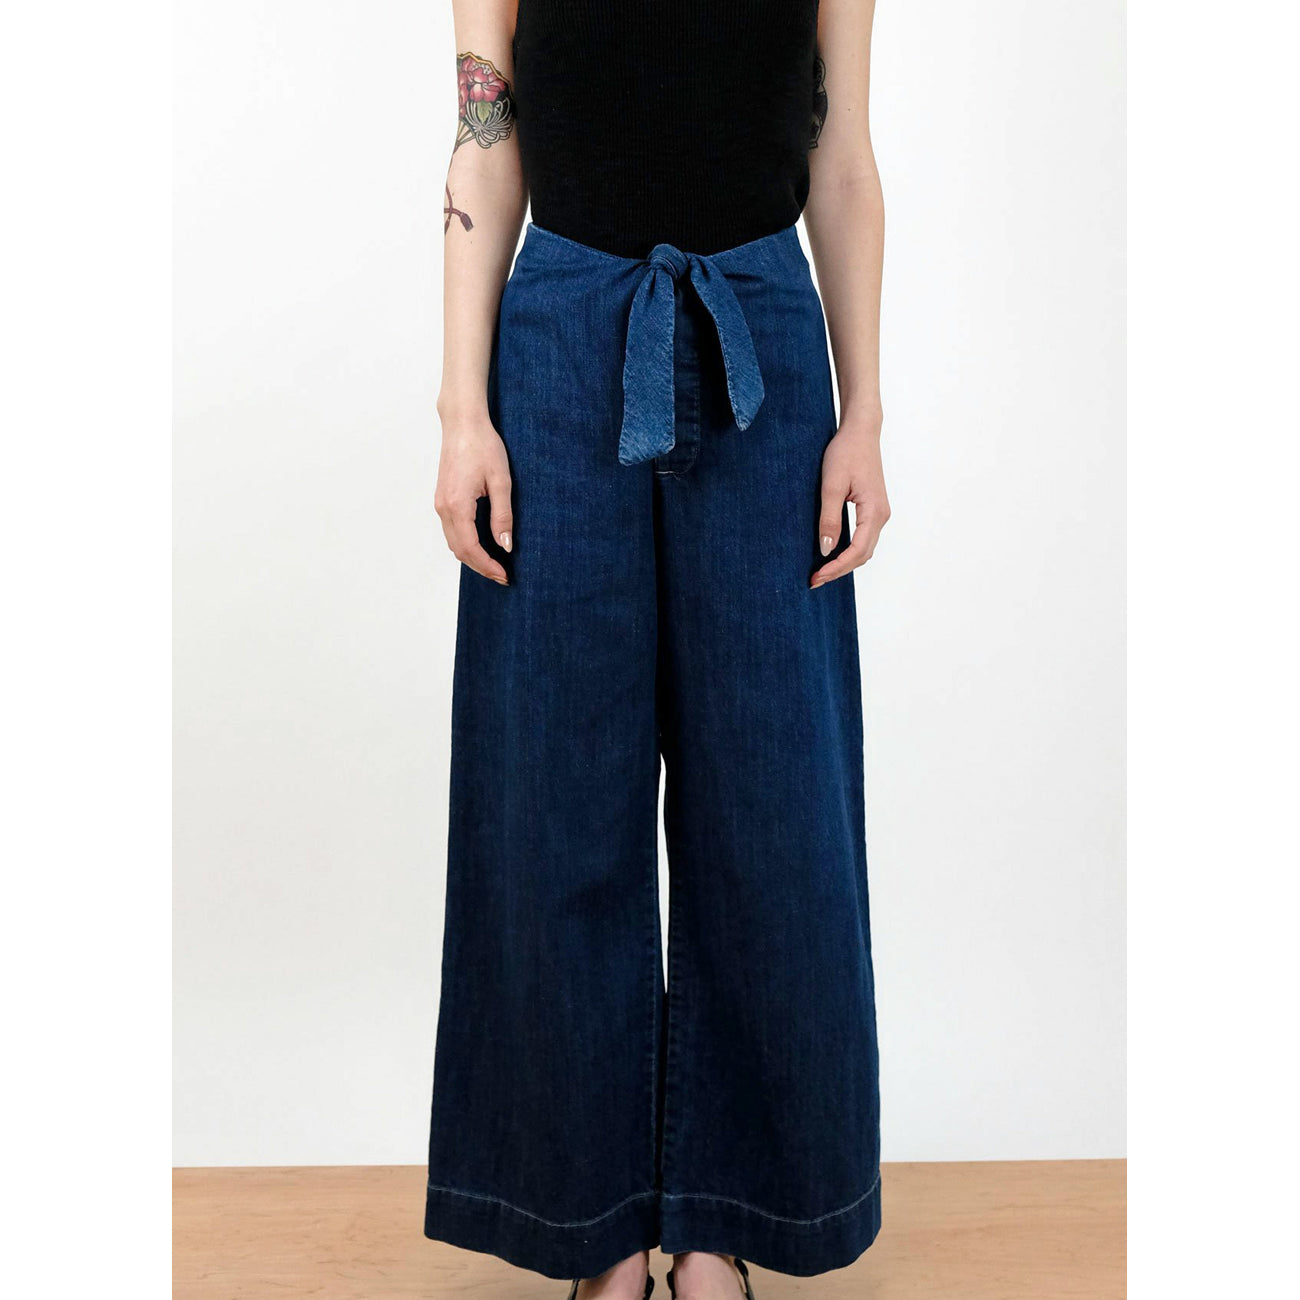 knotted sailor pant in true indigo